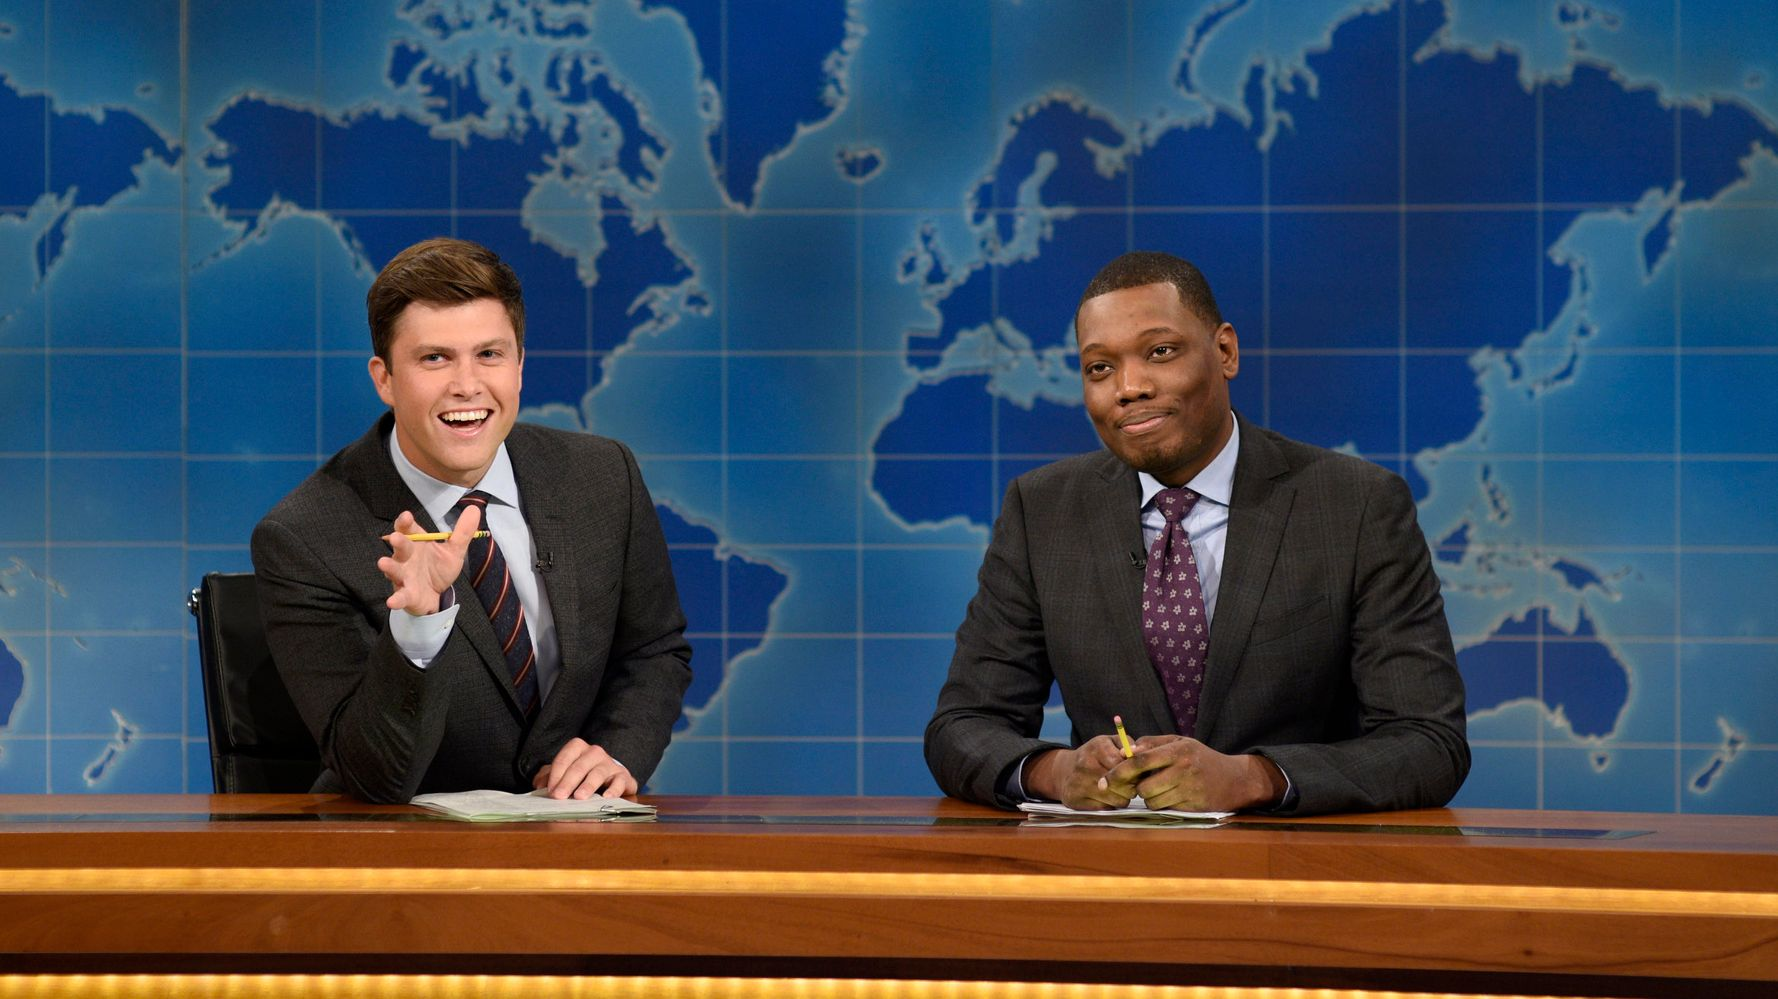 NBC Reportedly In Talks To Air 'Weekend Update' Spinoff Series